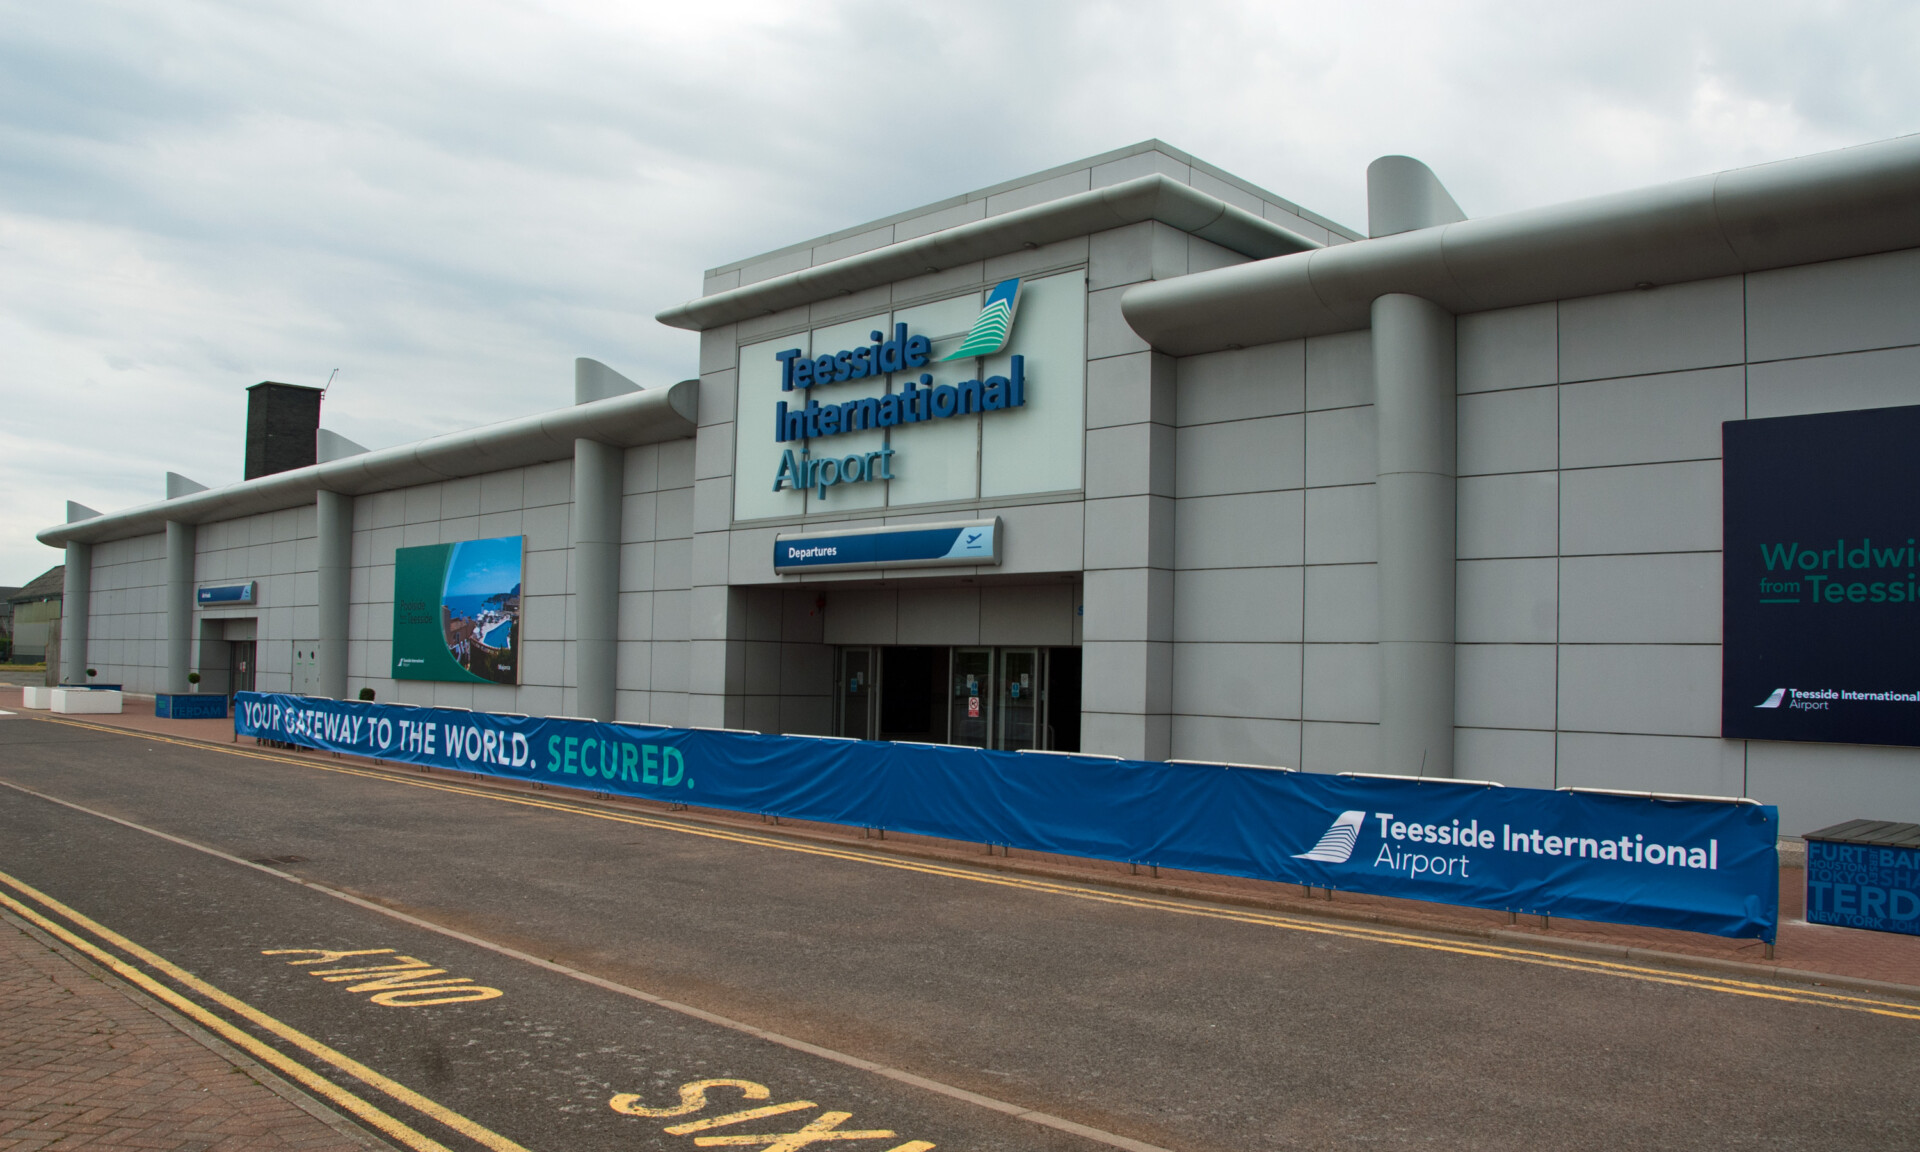 Teesside Airport Remains Closed After Aircraft Incident